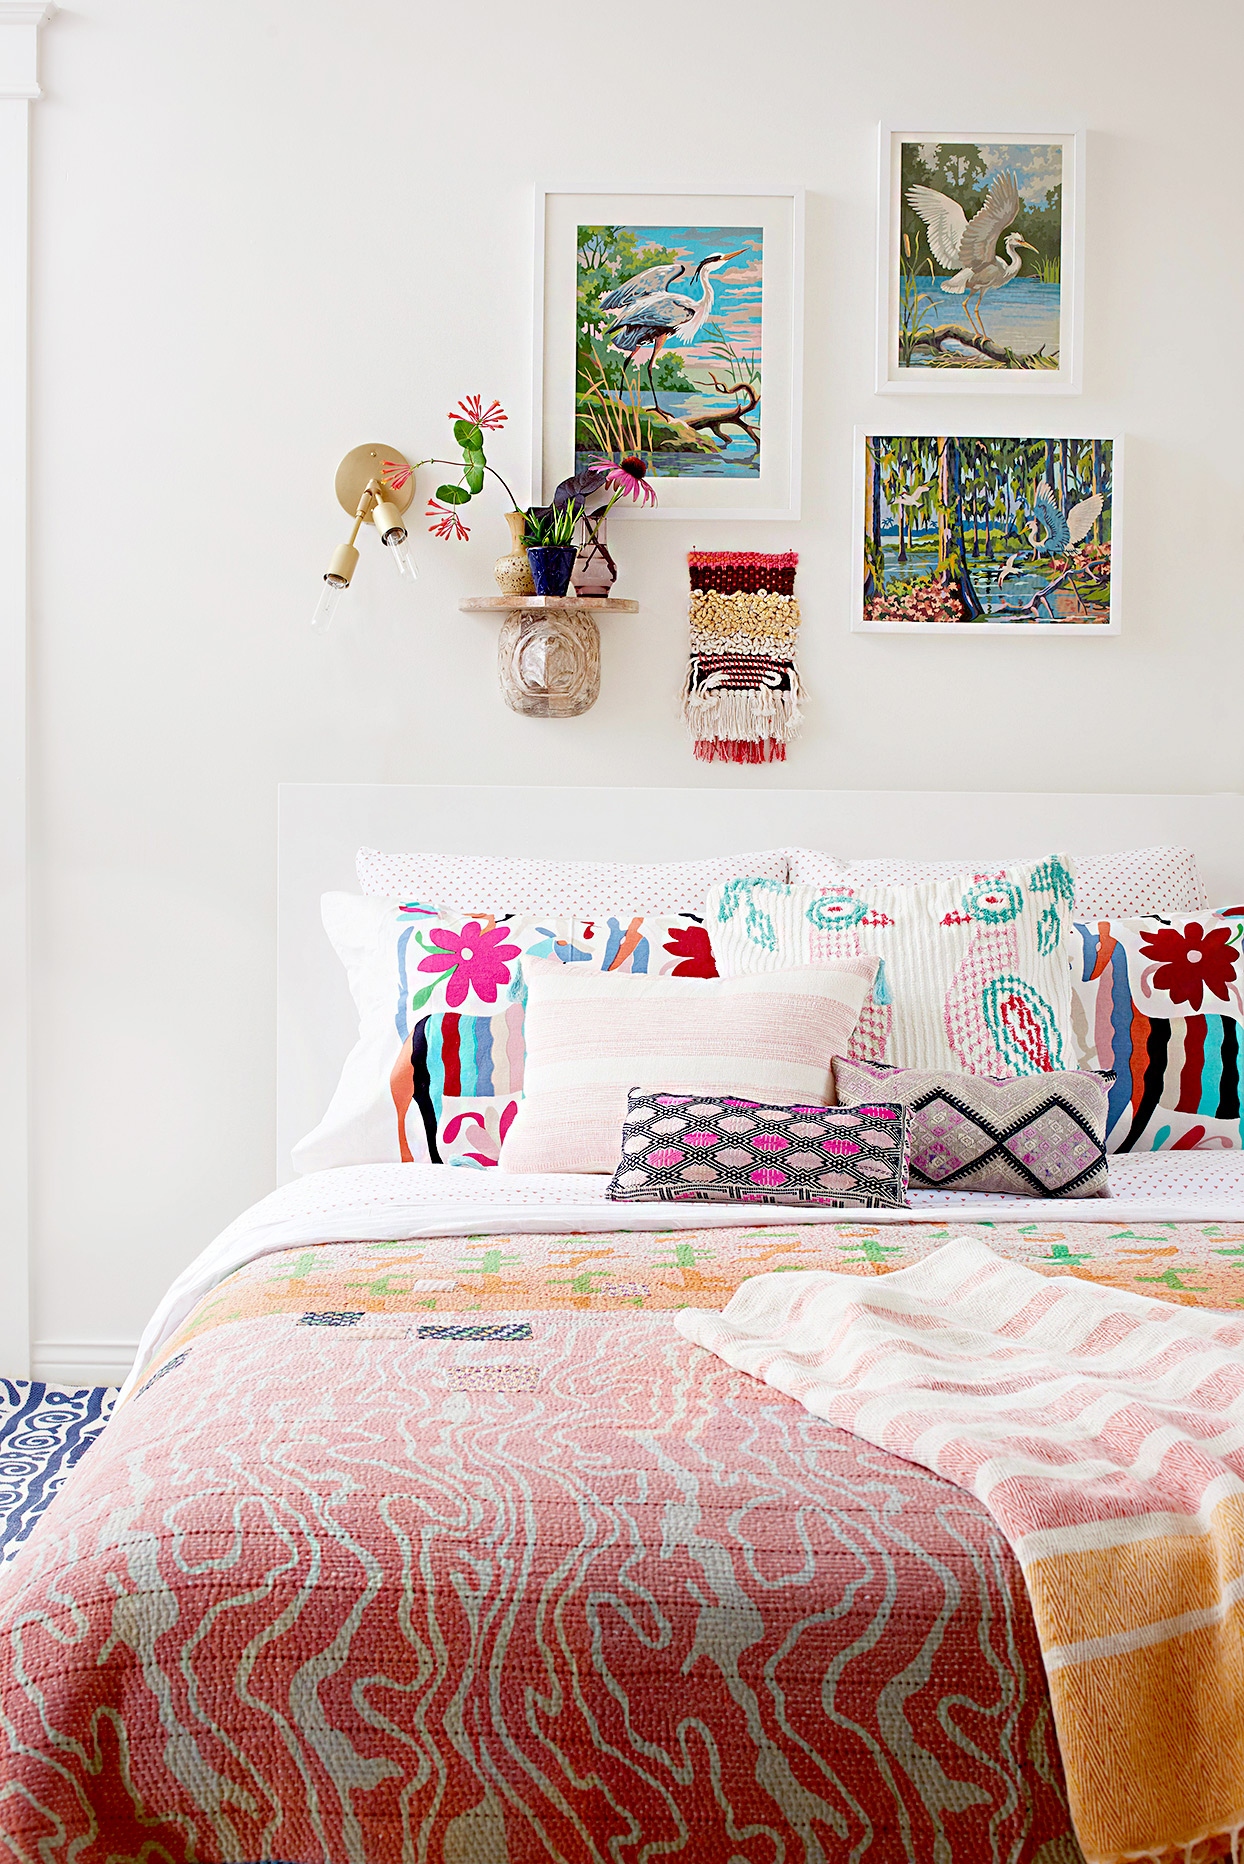 Bed with colorful pillows and wall artwork